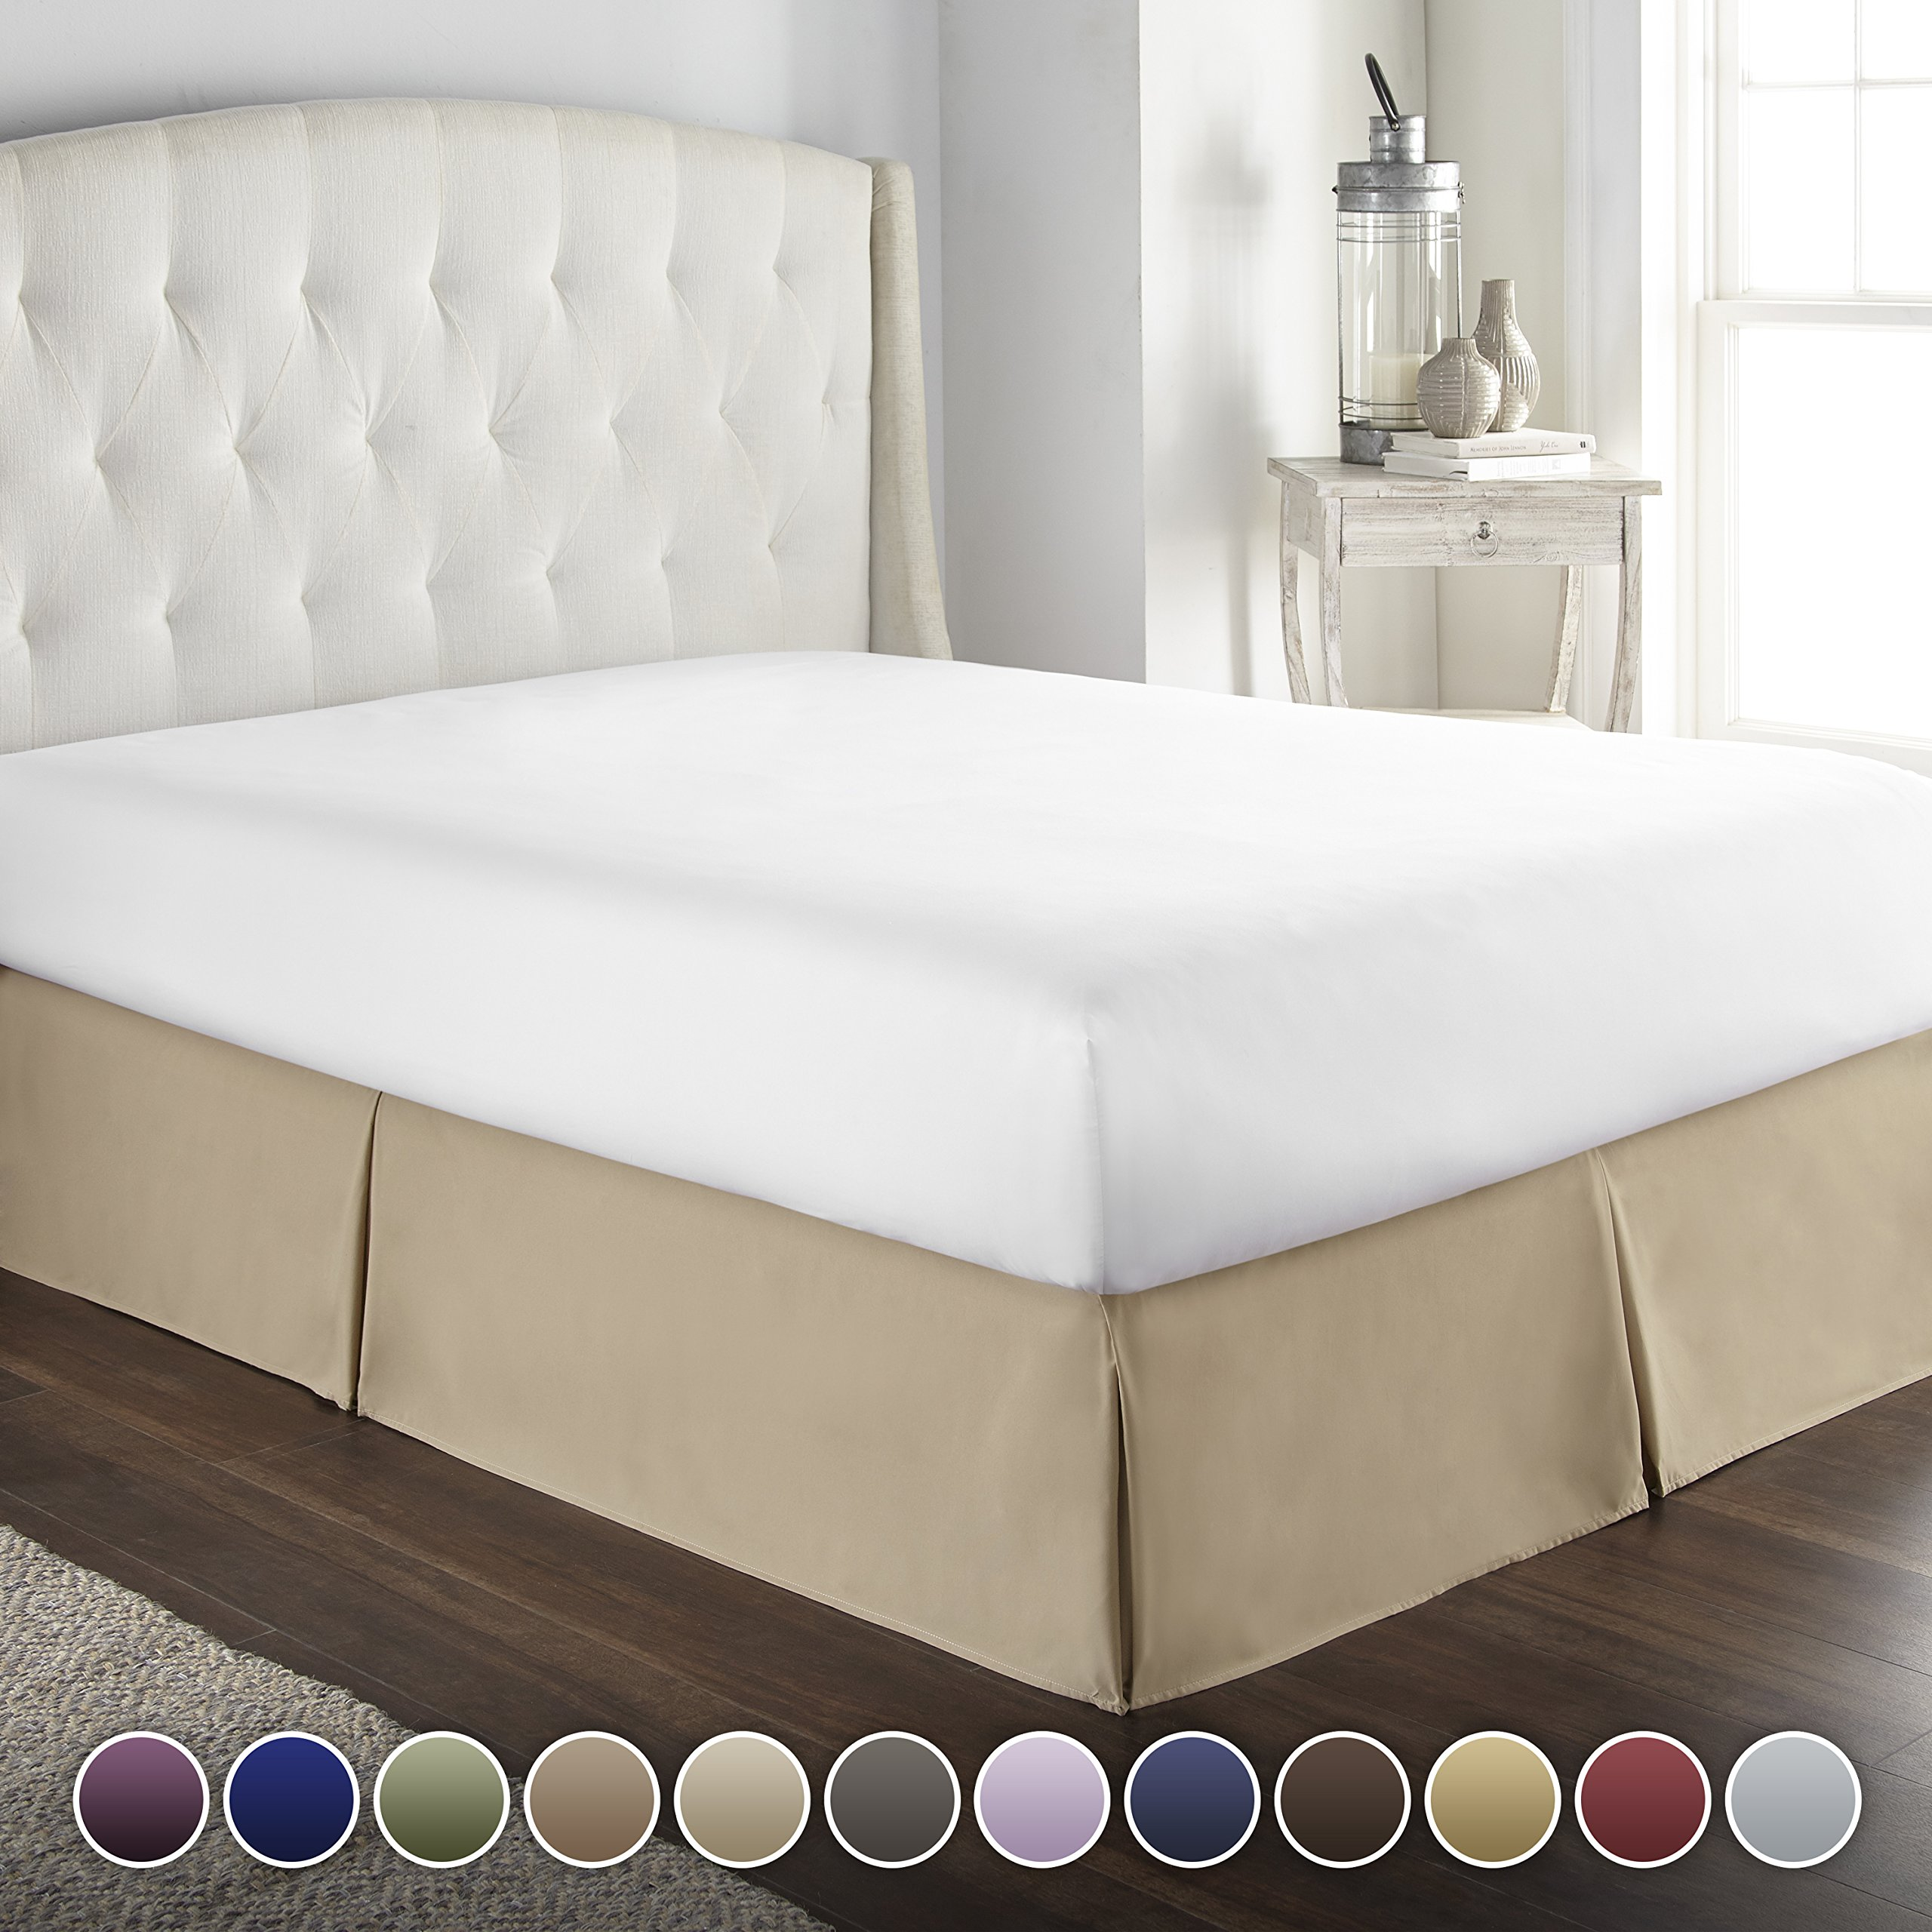 HC COLLECTION Hotel Luxury Bed Skirt/Dust Ruffle 1800 Platinum Collection-14 inch Tailored Drop, Wrinkle & Fade Resistant, Linens (Full, Taupe)